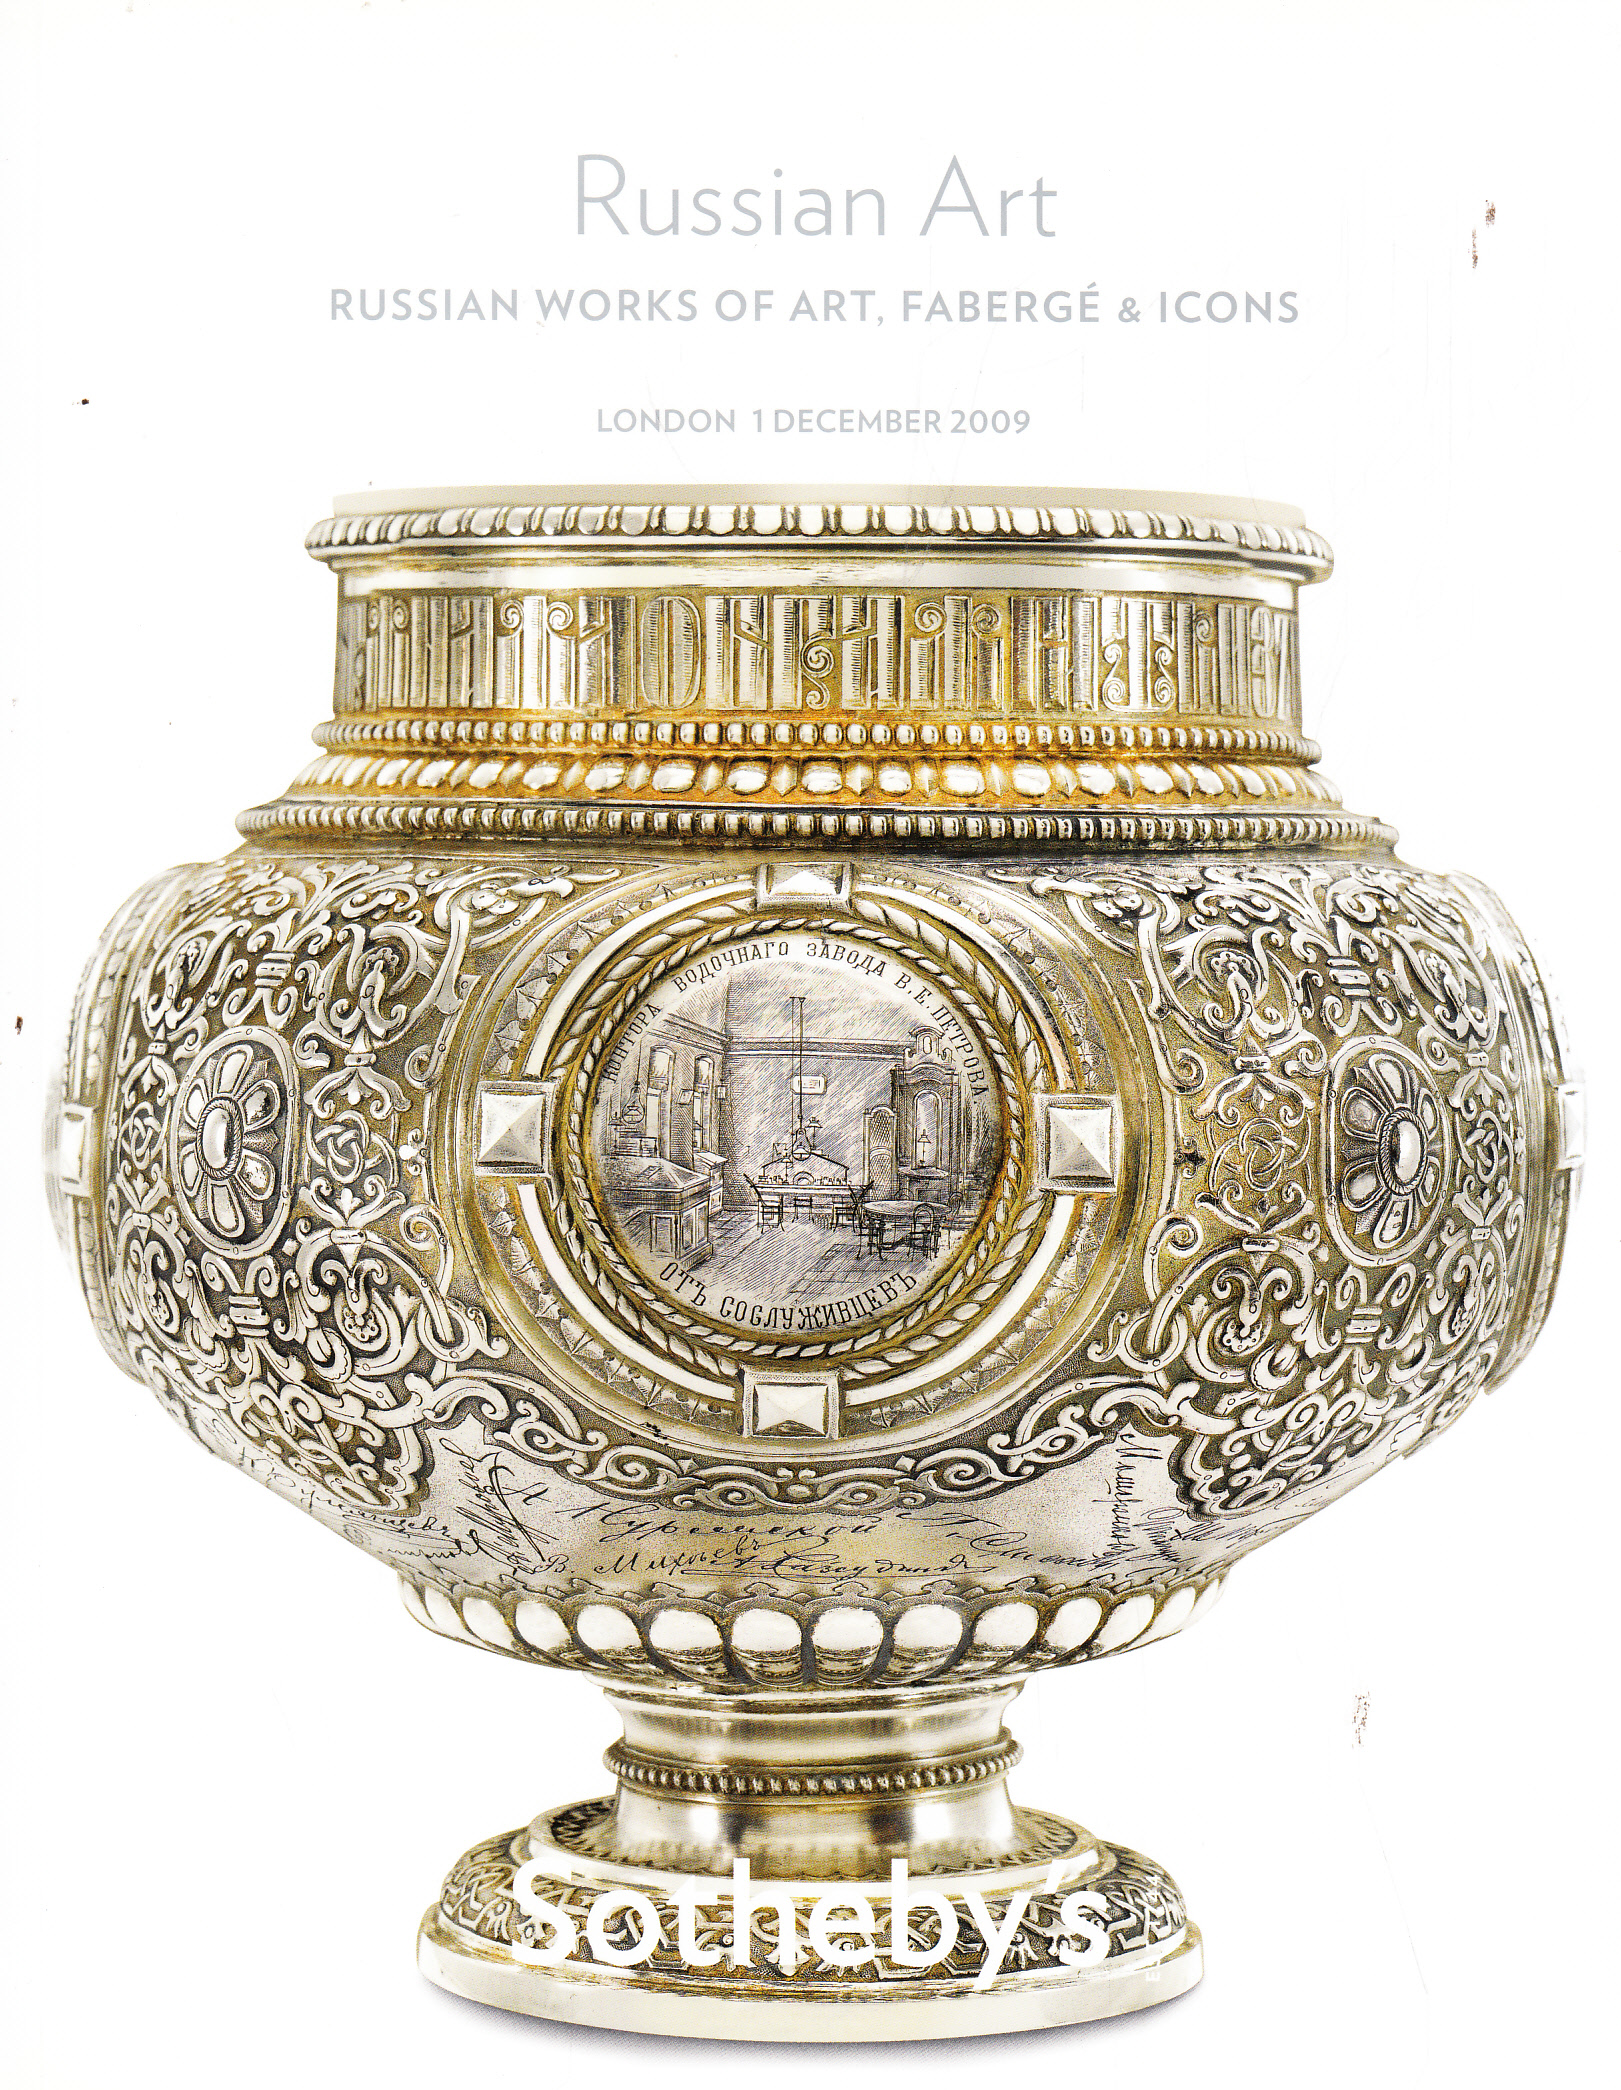 Sotheby's Russian Art new York 12 April 2011 Catalogue